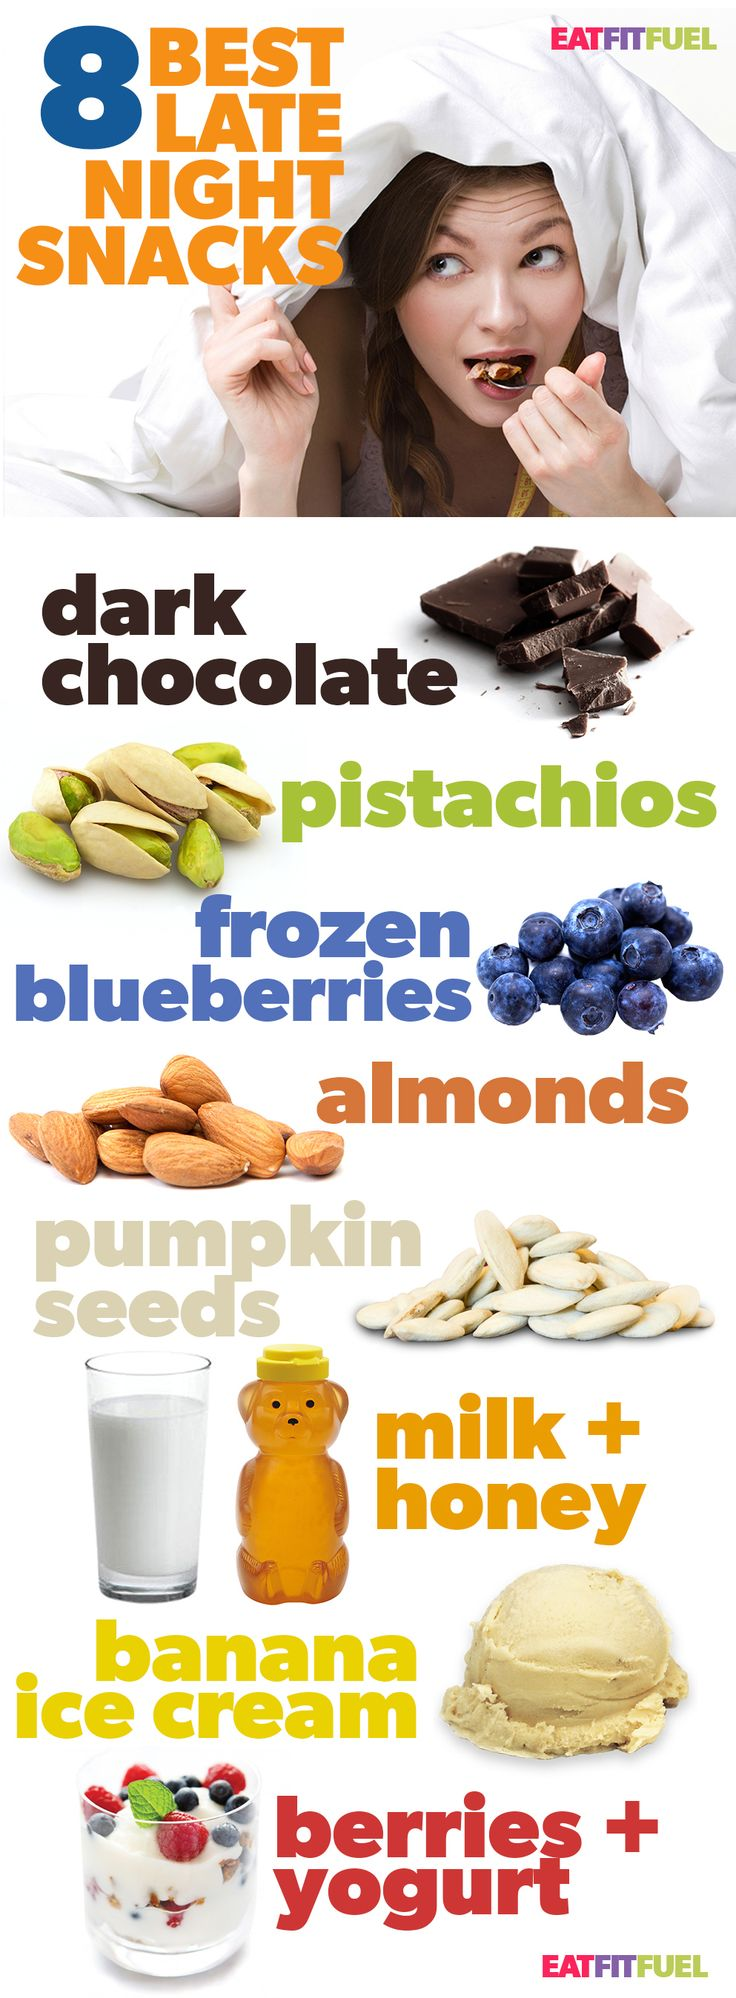 The 8 Best Late Night Snacks for Weight Loss Infographic!